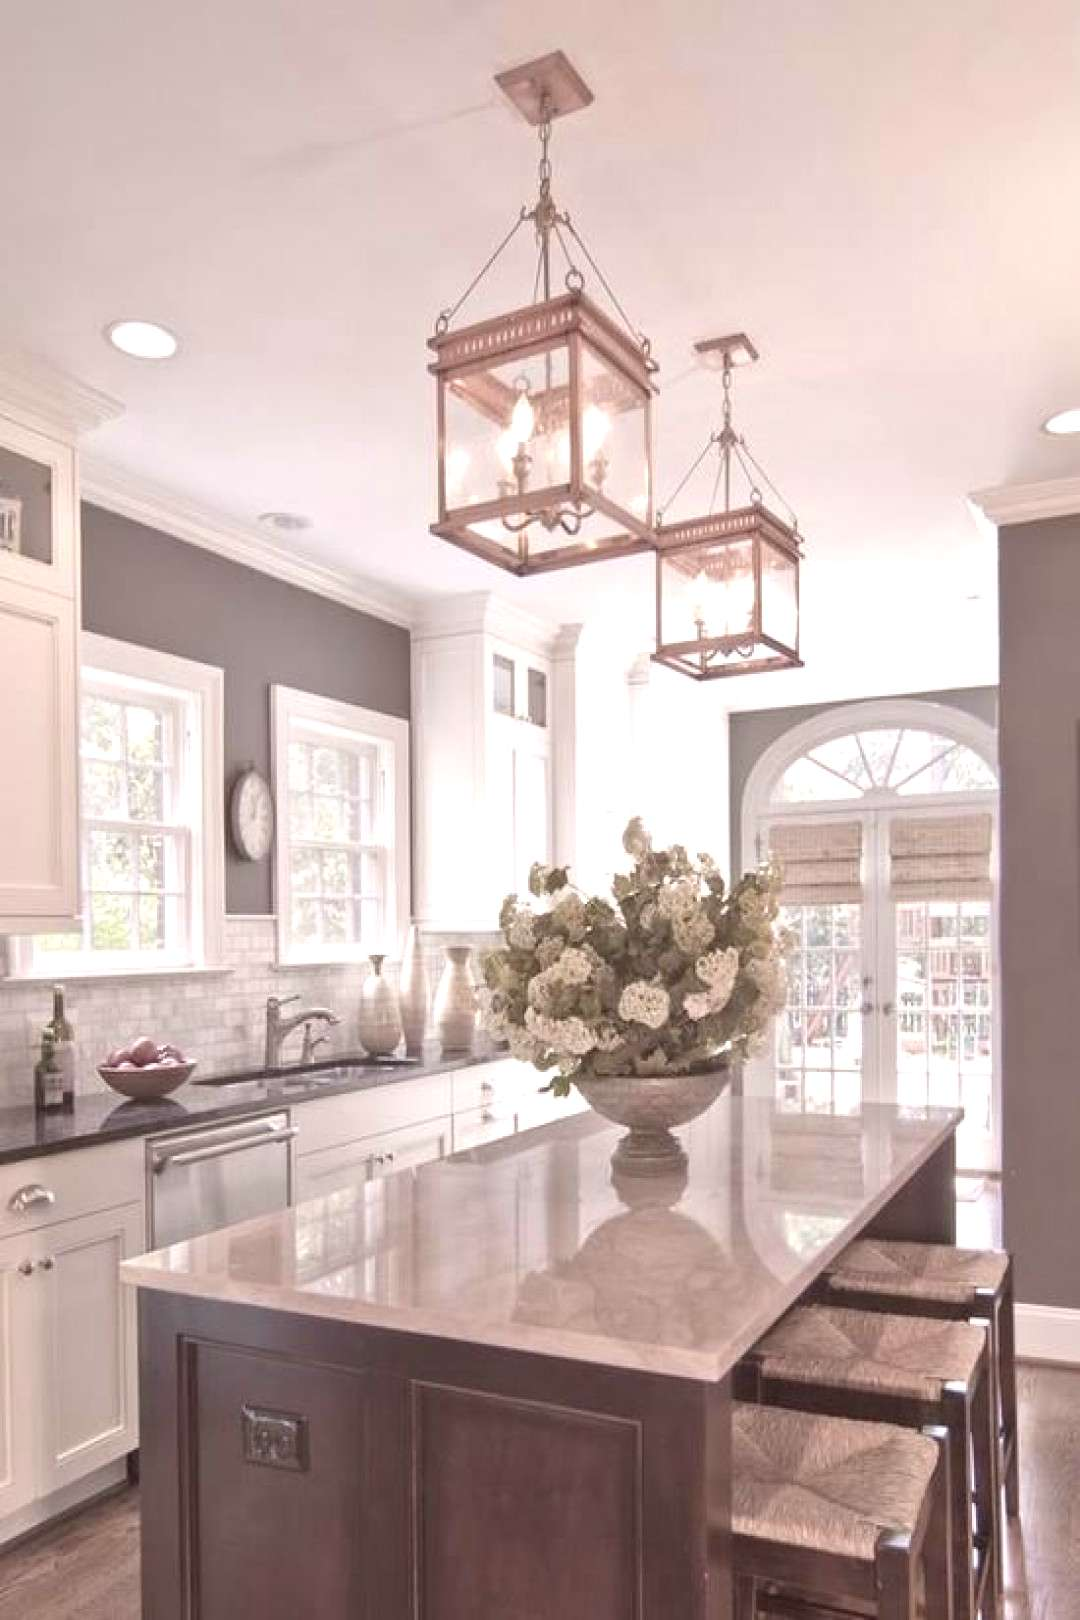 95++ reference of antique white kitchen cabinets with dark island antique white kitchen cabinets wi